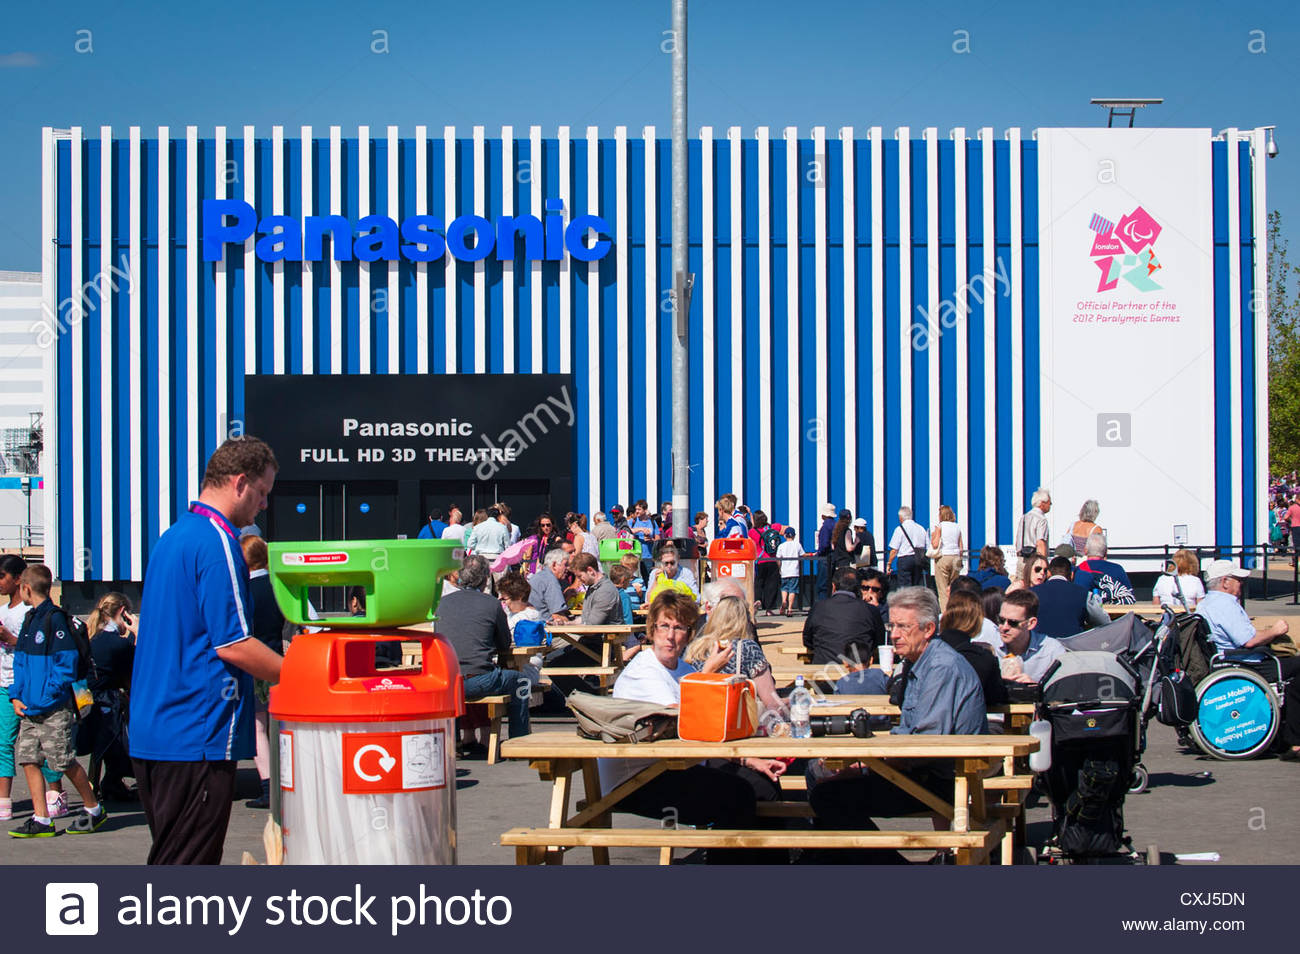 London 2012 Paralympics Olympic Park Stratford The Panasonic Full HD 3D Theatre With Picnic